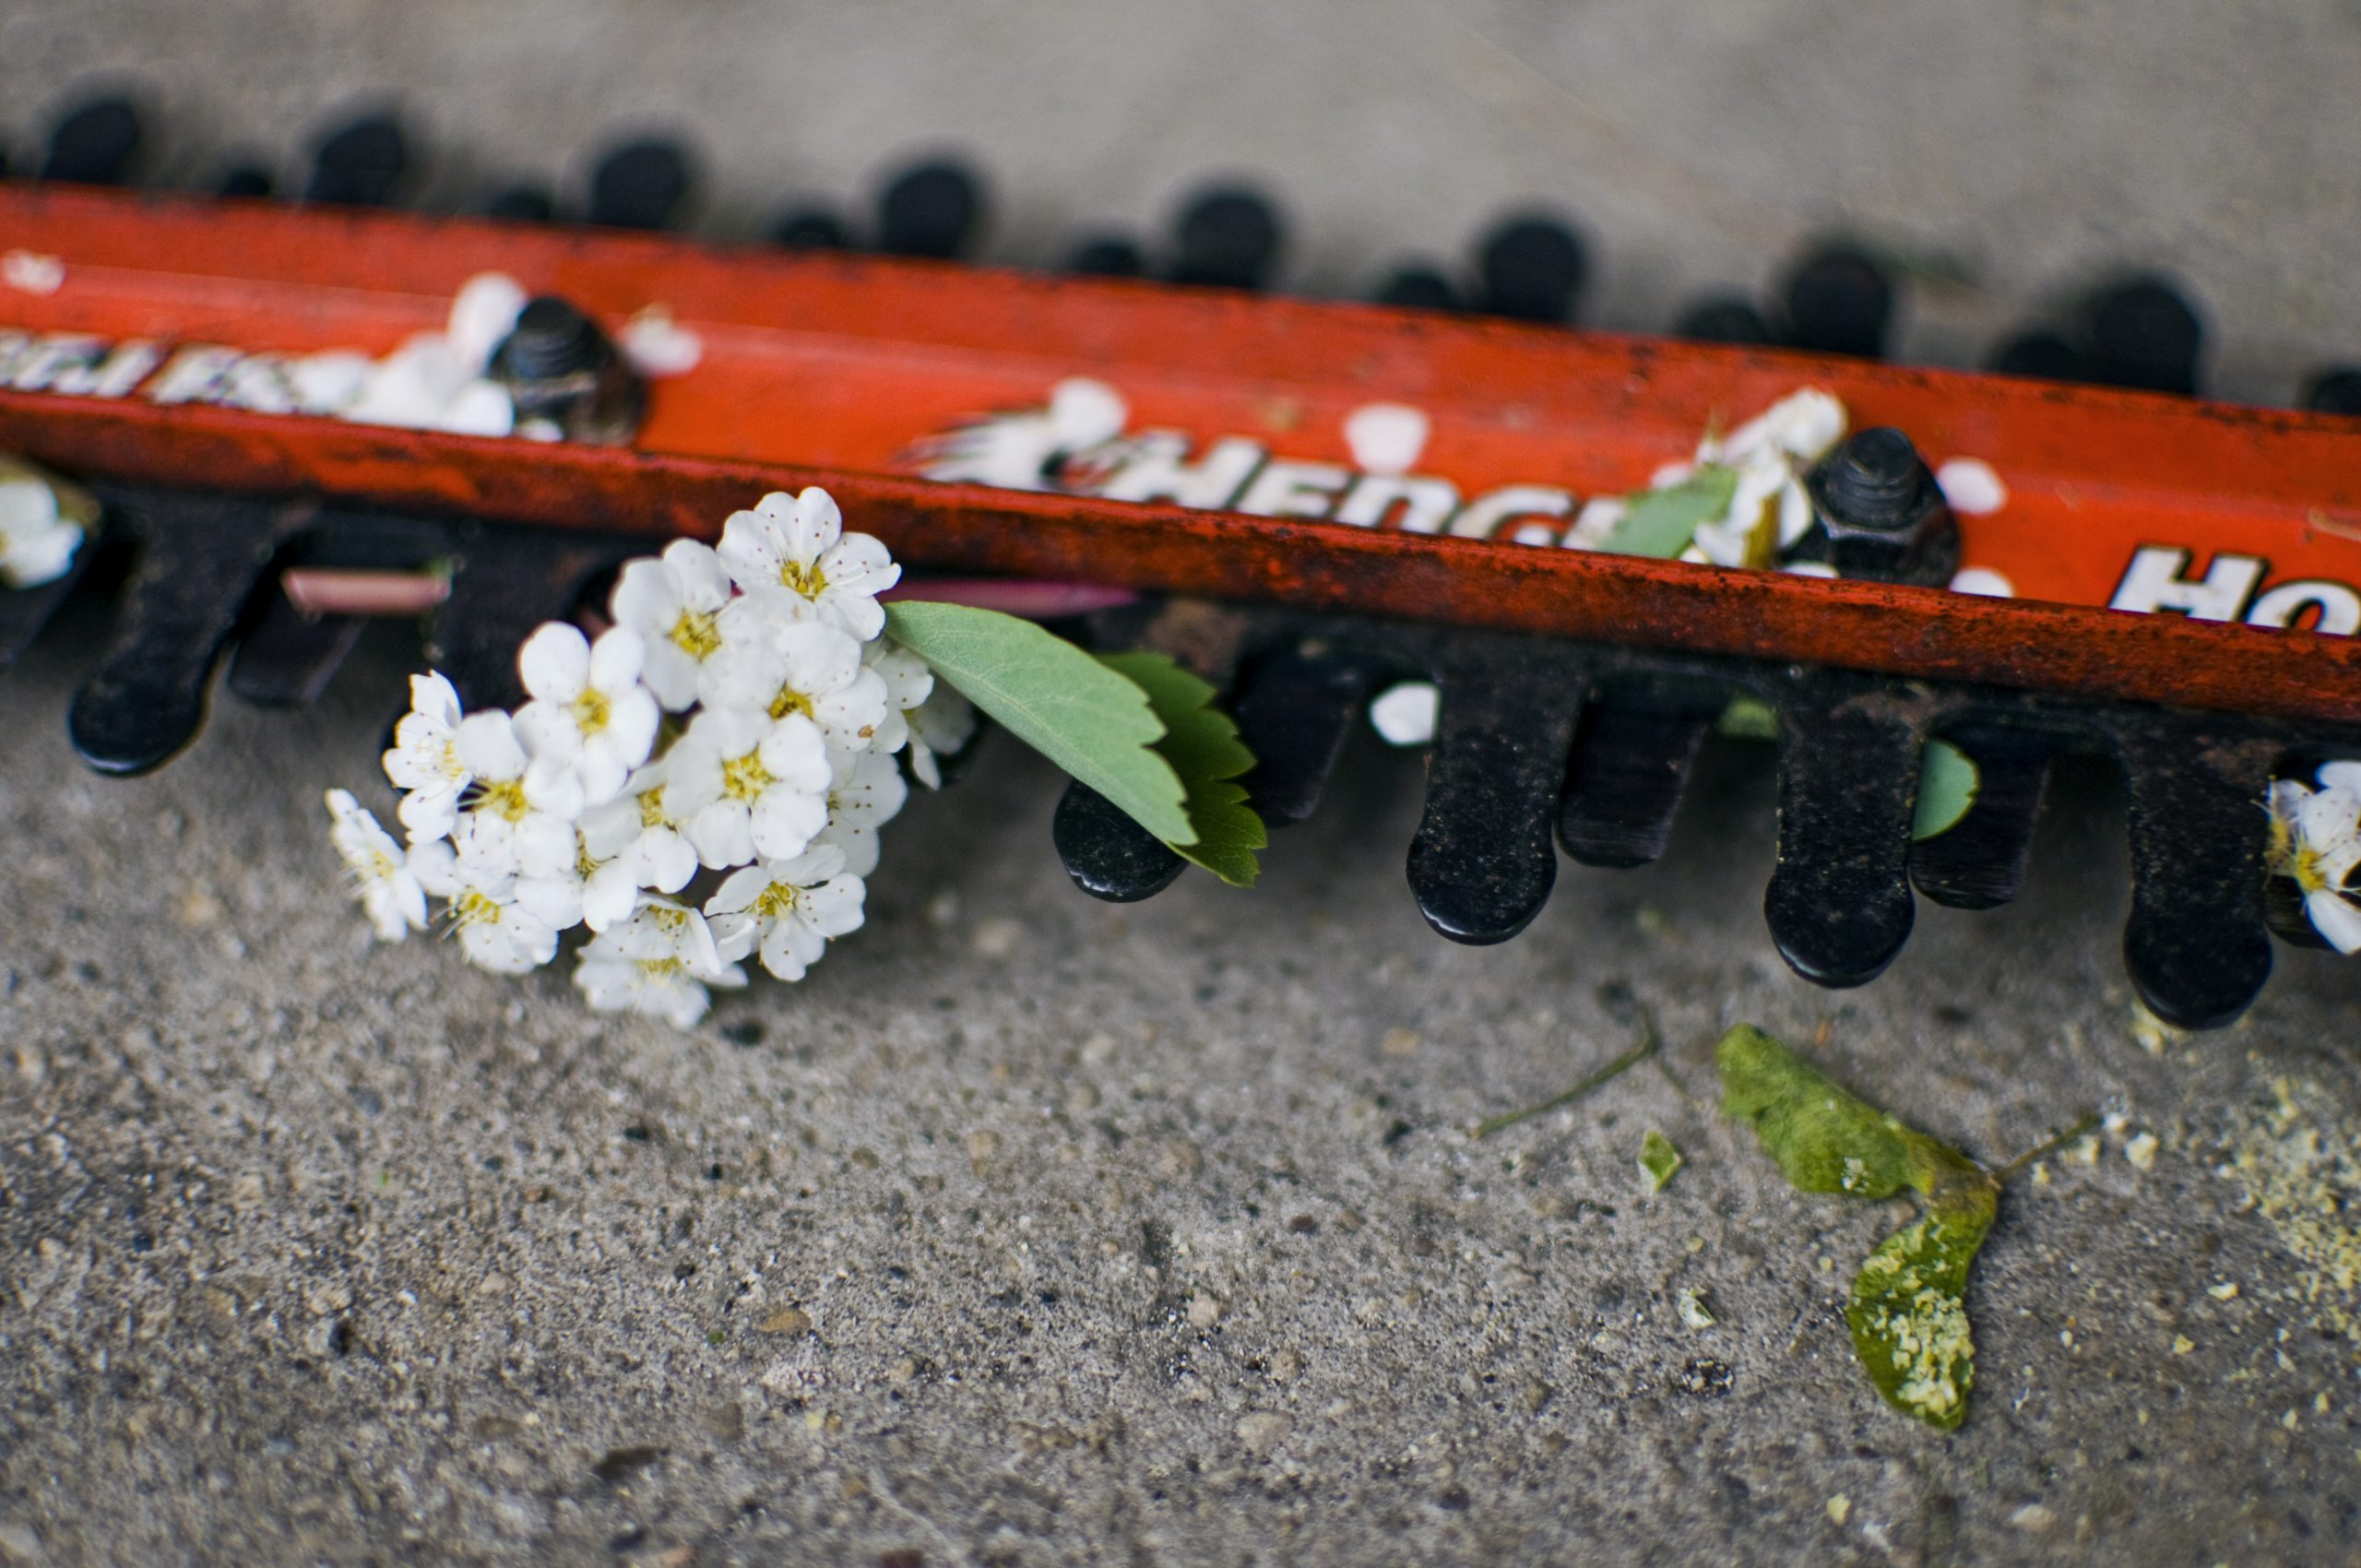 Hedge trimmer with white flowers